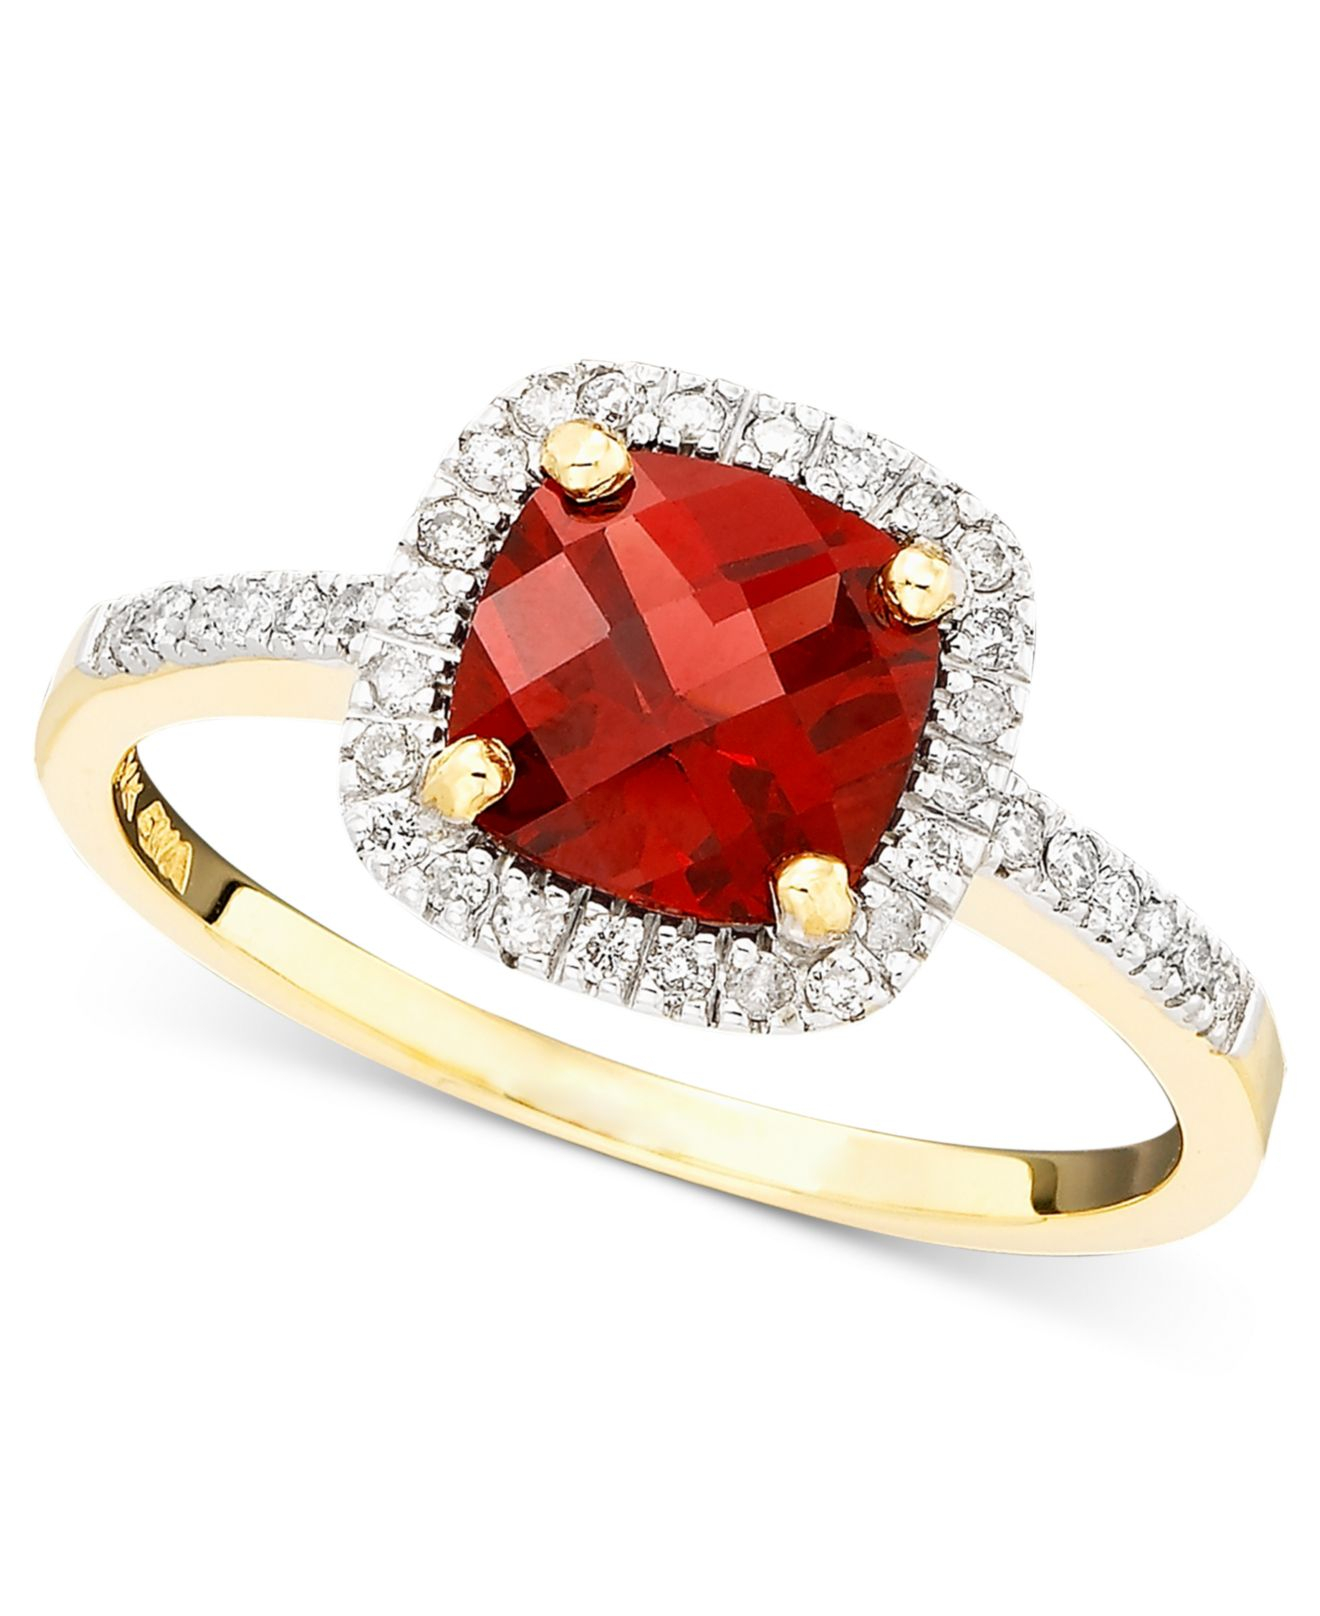 Macy s Garnet 1 1 6 Ct T w And Diamond 1 6 Ct Tw Ring In 10k Gold